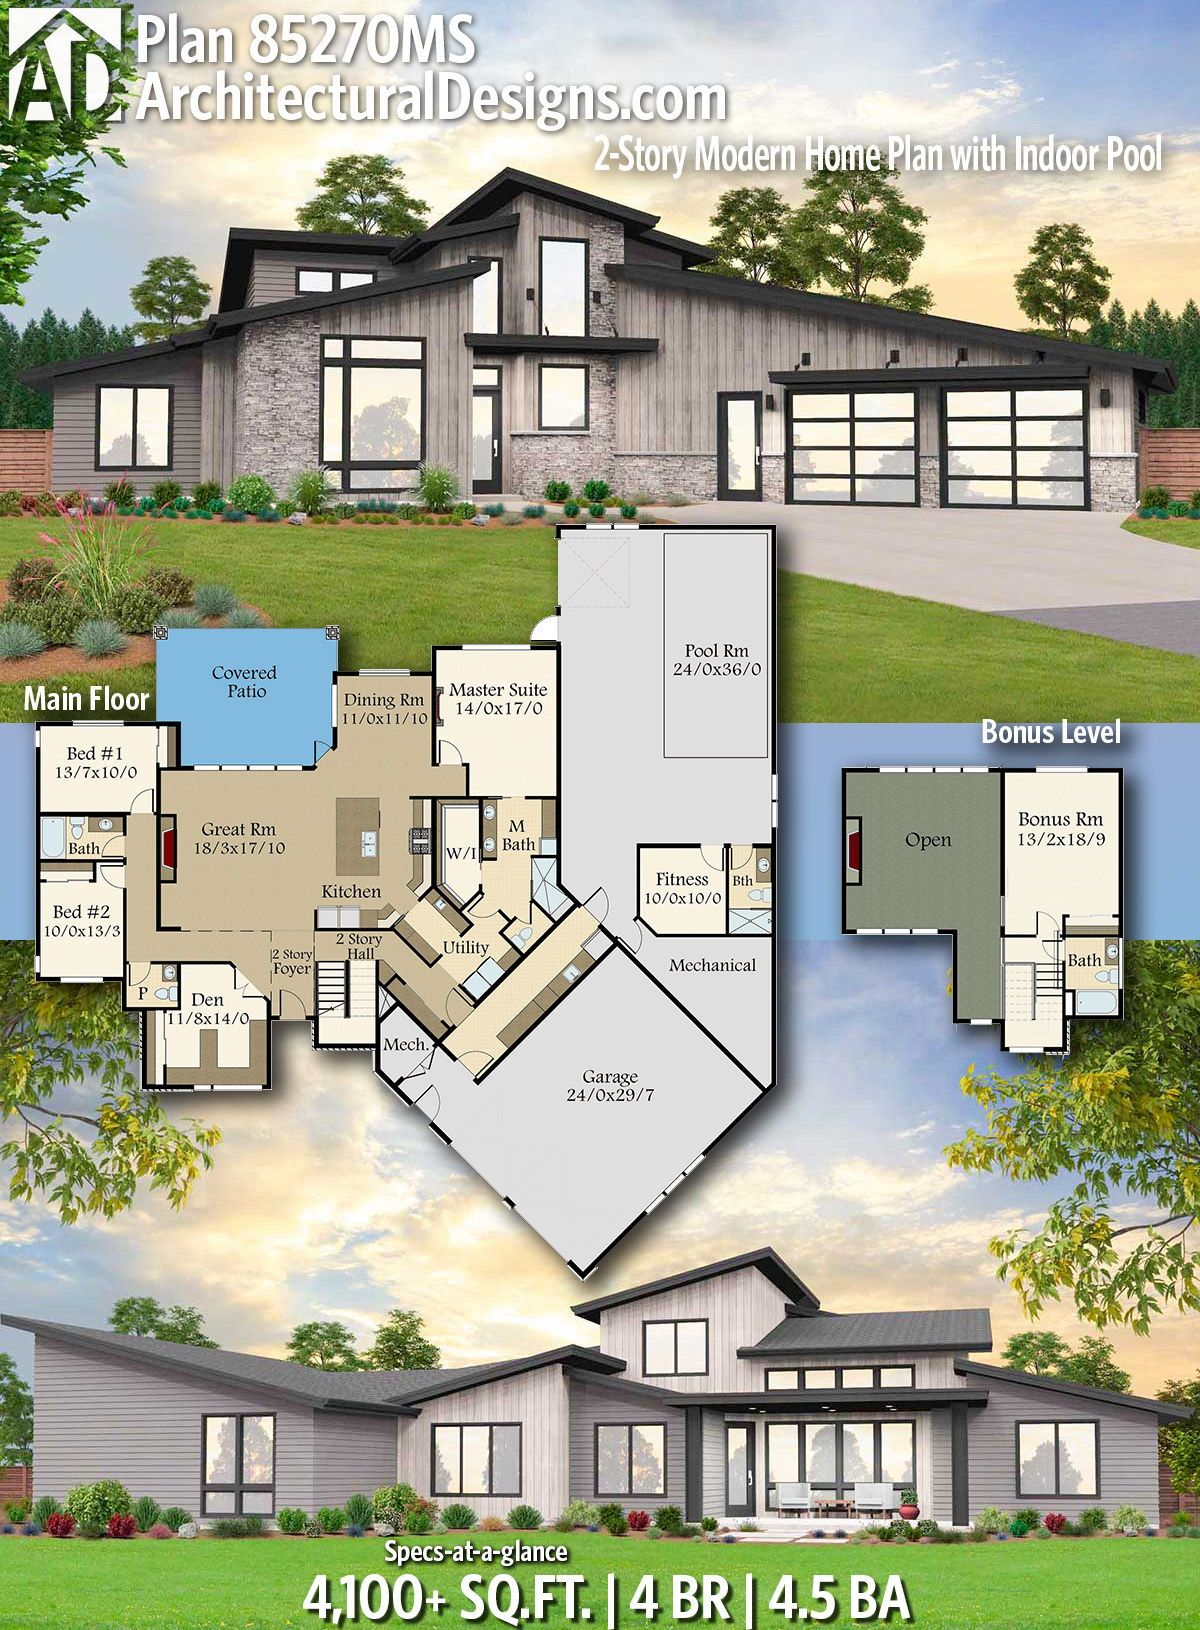 Plan 85270ms 2 Story Modern Home Plan With Indoor Pool House Plans Modern House Design Beach Style House Plans